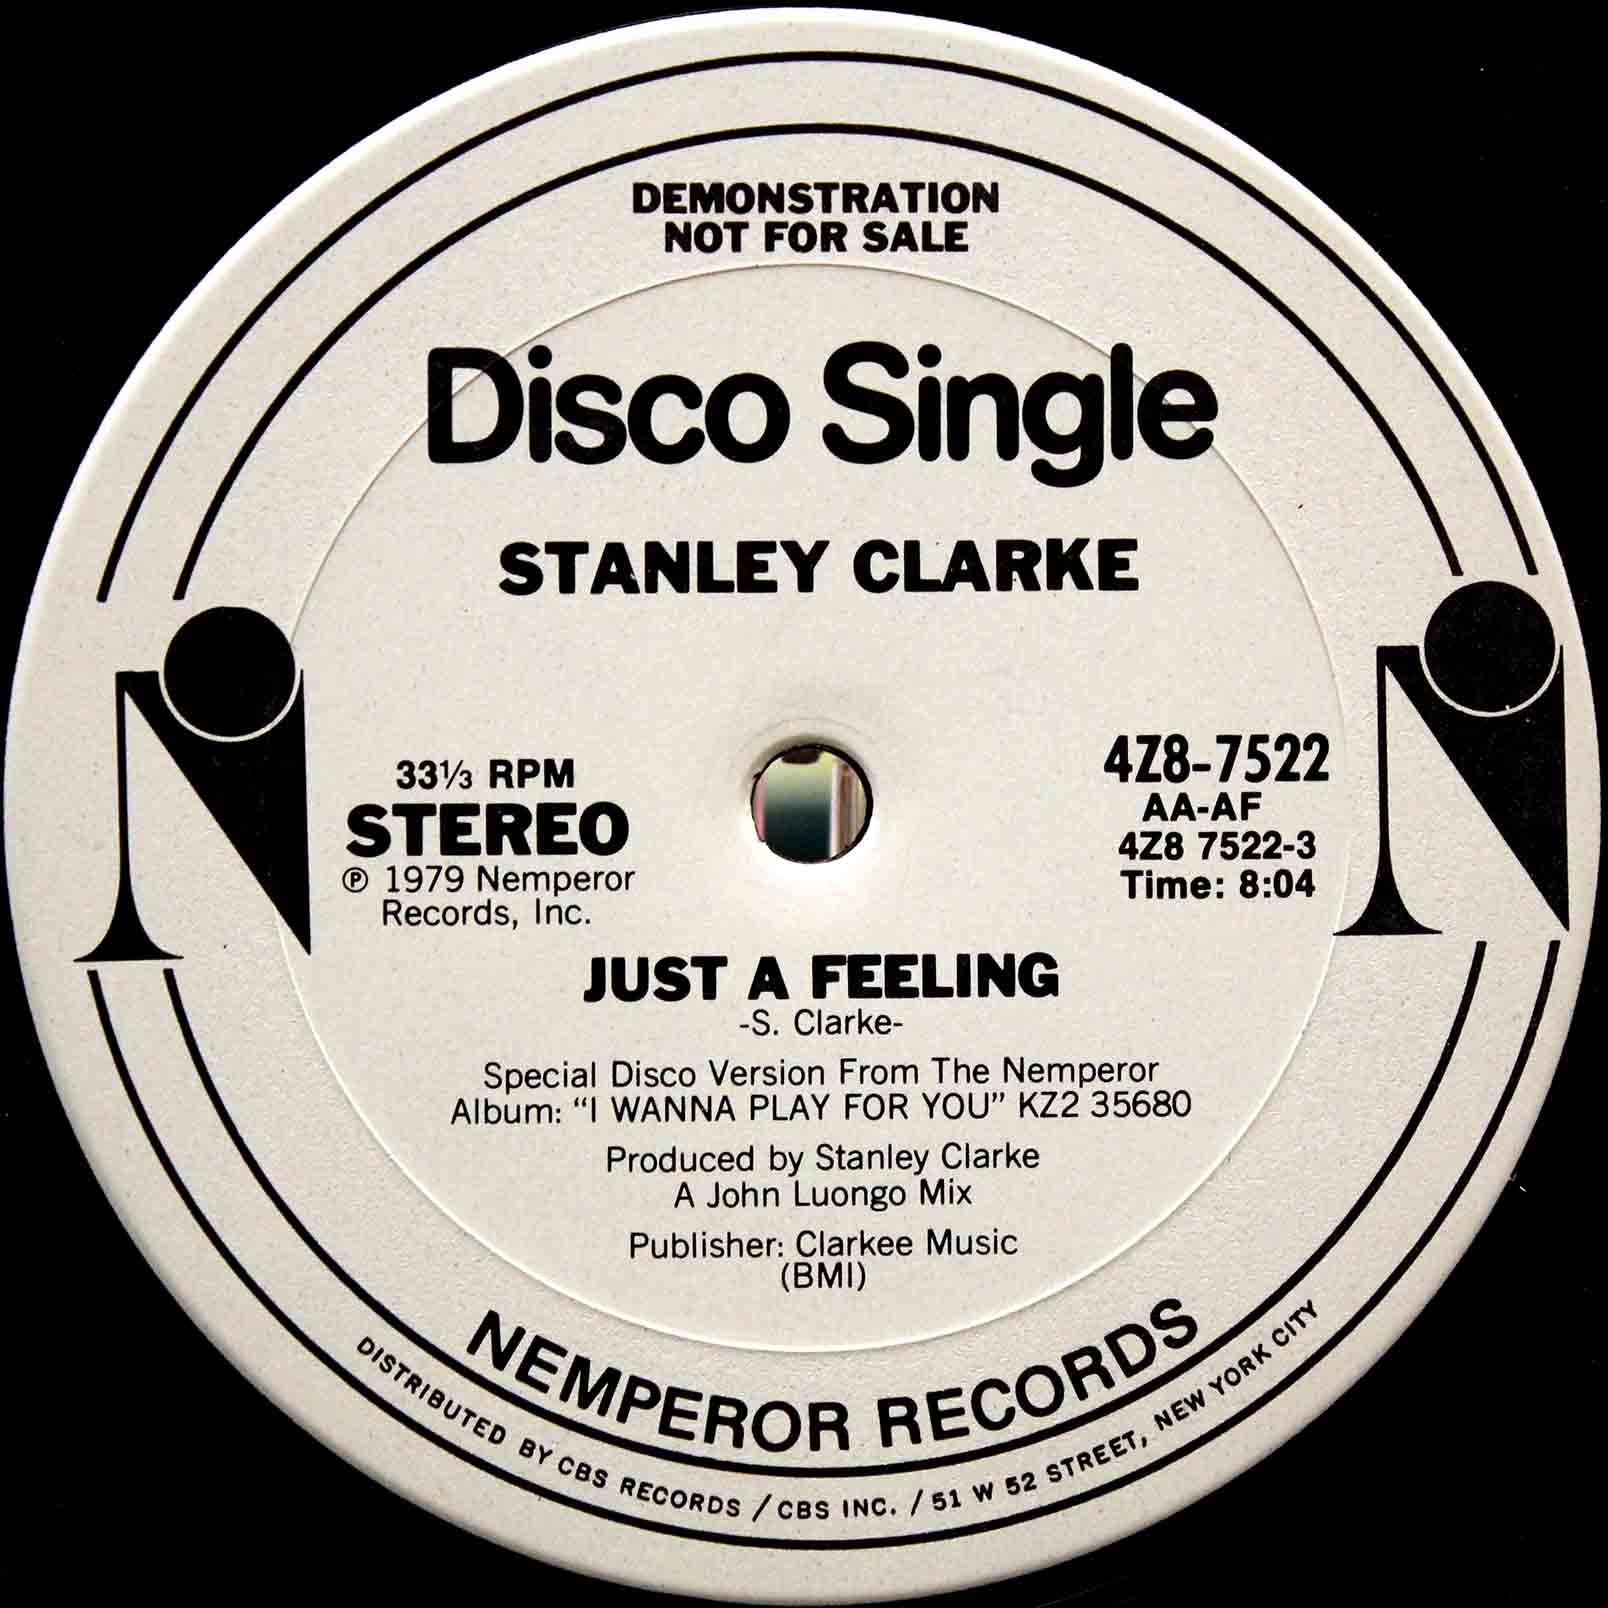 STANLEY CLARKE JUST A FEELING 02